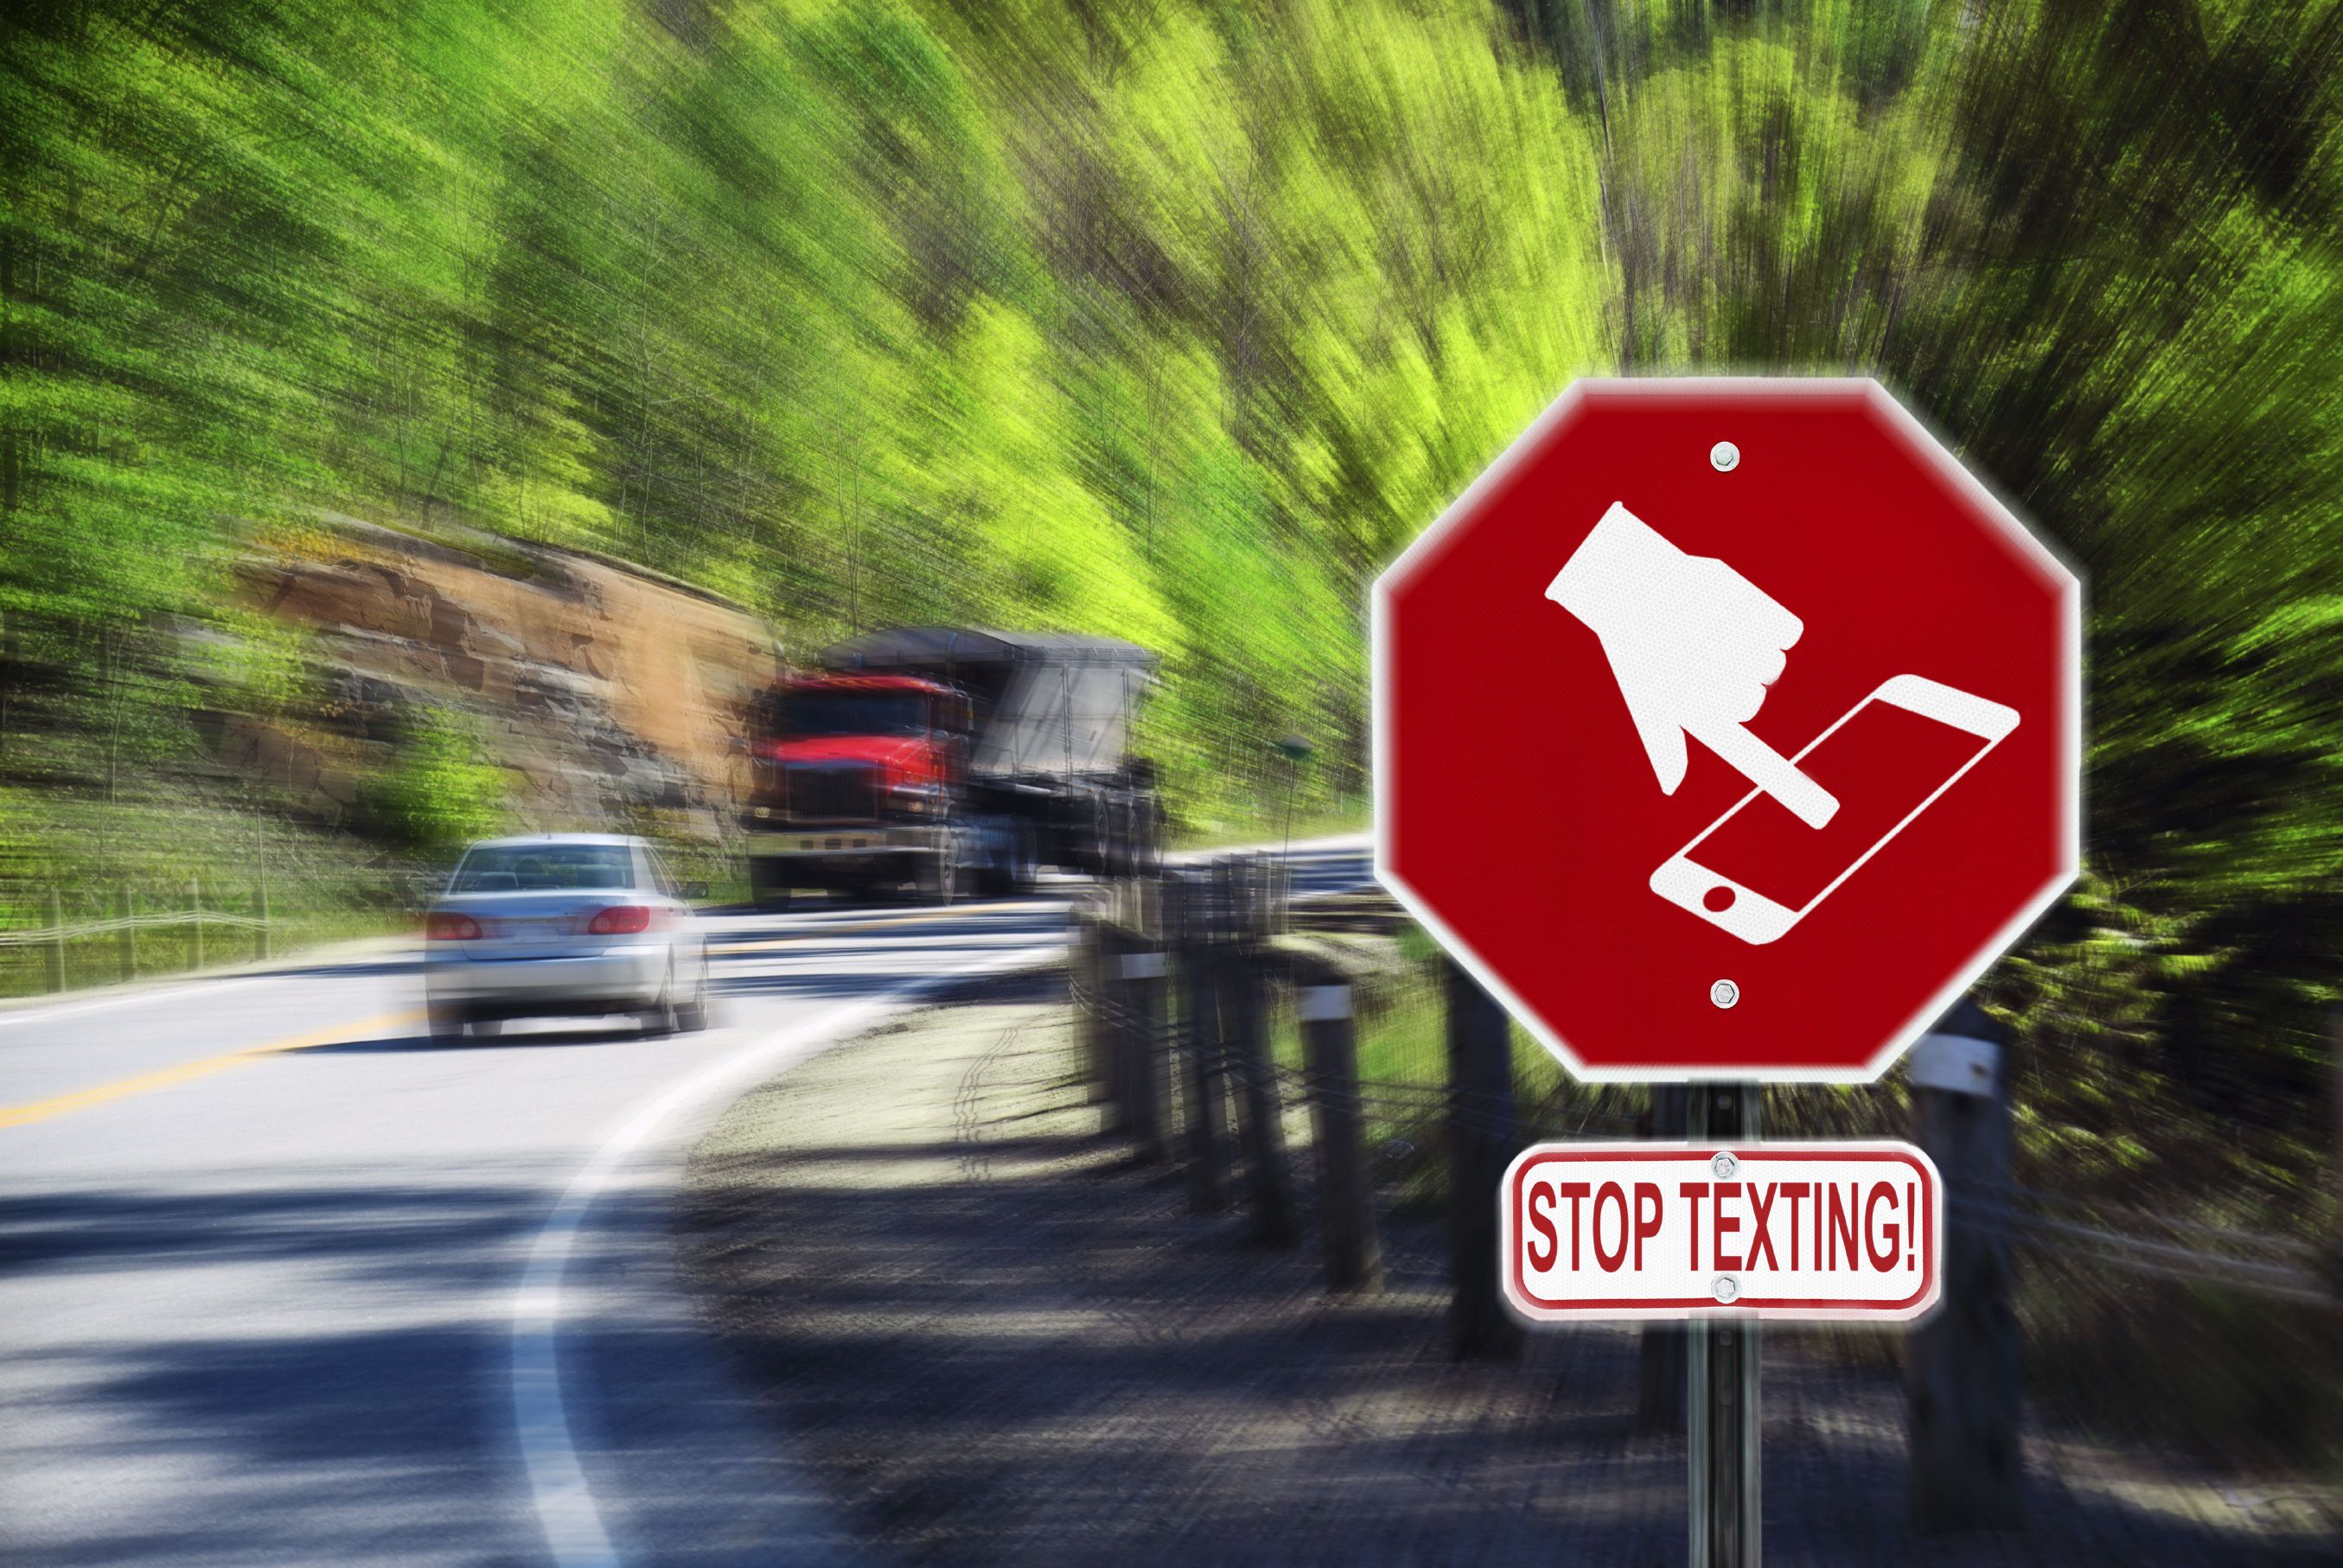 Texting While Driving >> Texting while driving: Does banning it make a difference? - CBS News